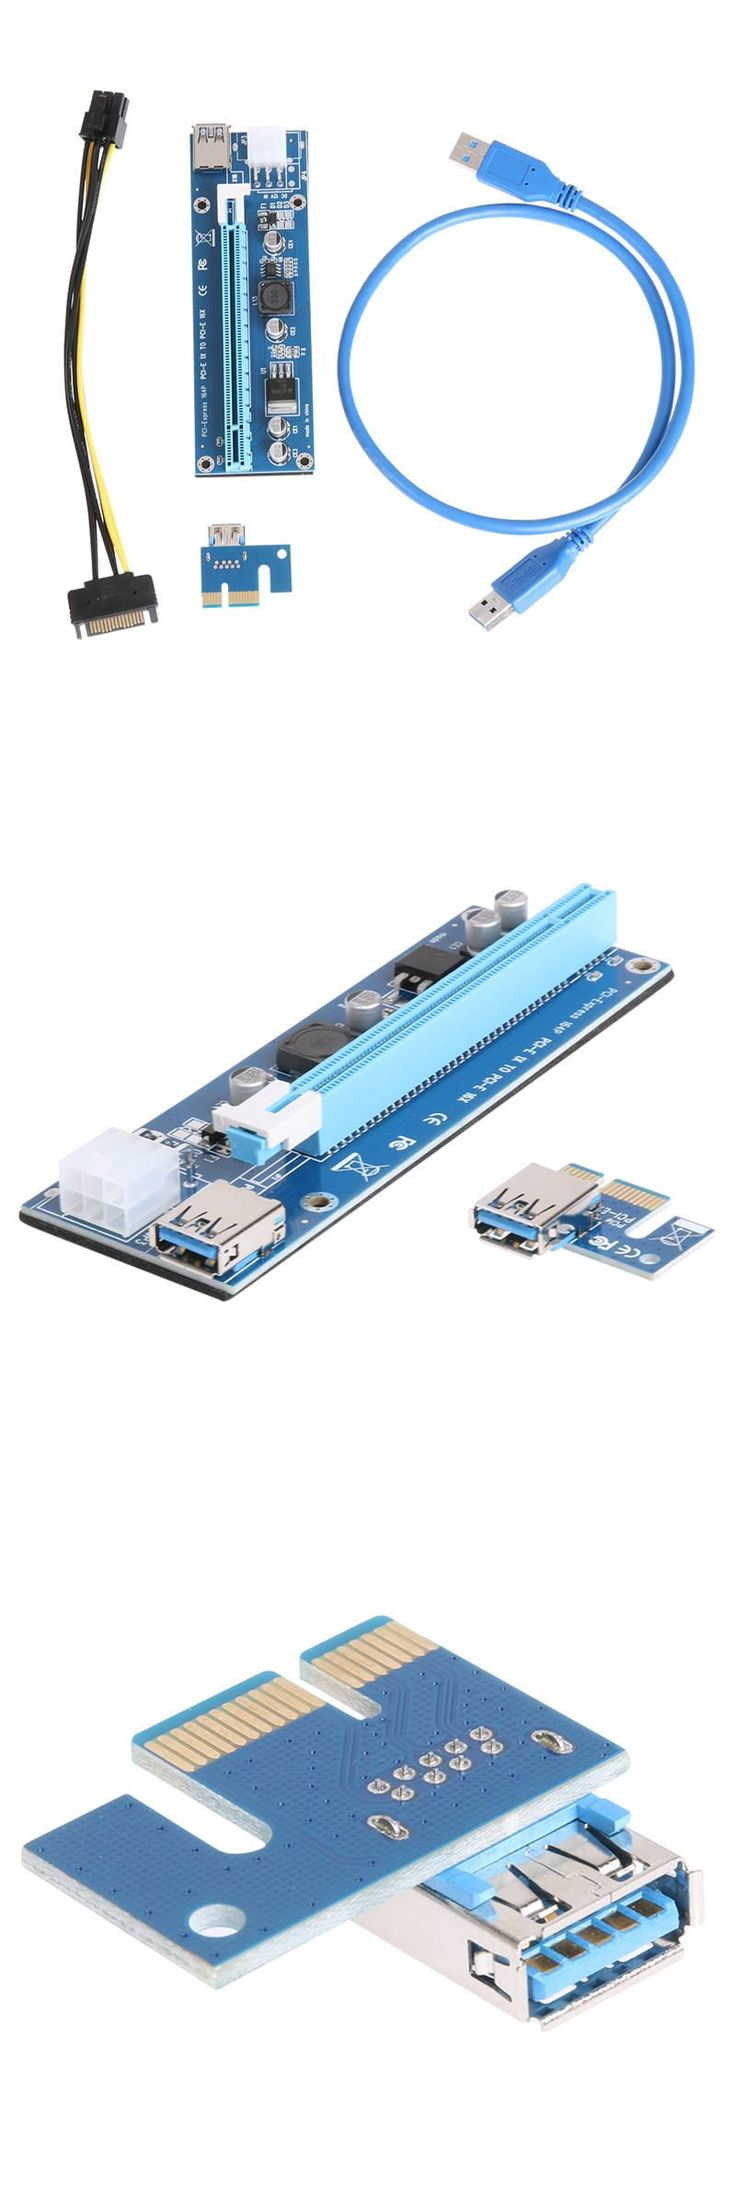 [Visit to Buy] PCI-E Express Riser Card 1x to 16x PCI  Extender 60cm USB 3.0 Cable SATA to 6Pin Power for Bitcoin BTC Miner Mining Full Stock #Advertisement